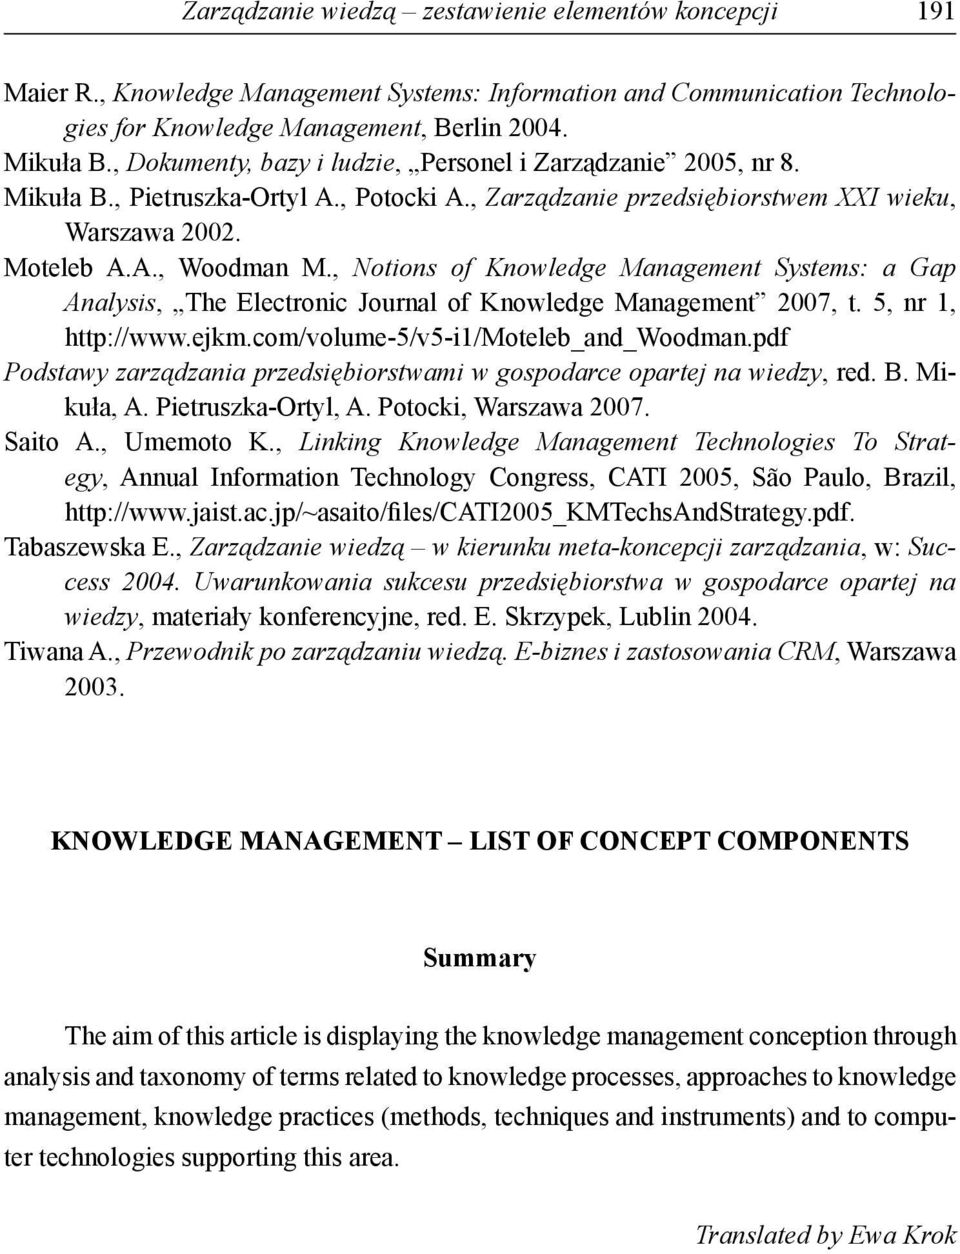 , Notions of Knowledge Management Systems: a Gap Analysis, The Electronic Journal of Knowledge Management 2007, t. 5, nr 1, http://www.ejkm.com/volume-5/v5-i1/moteleb_and_woodman.